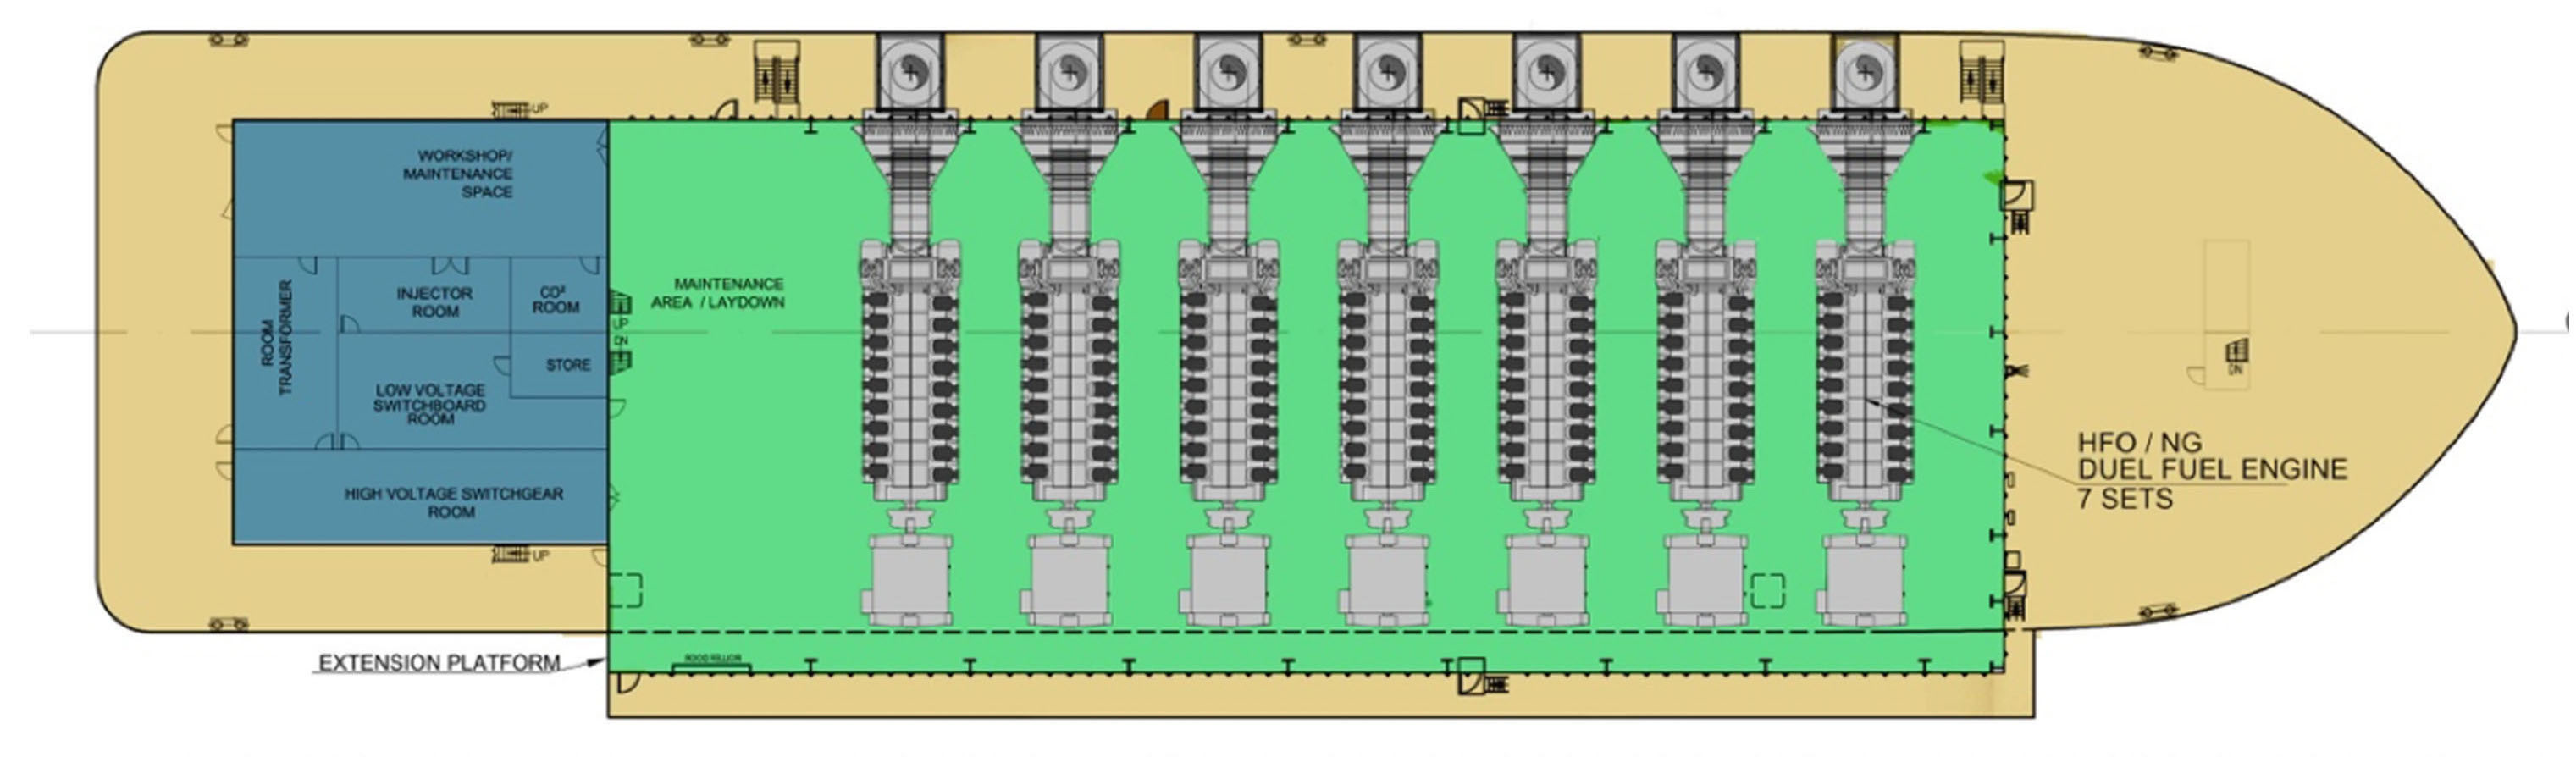 Power Barge: 120 MW Engine Configuration Layout